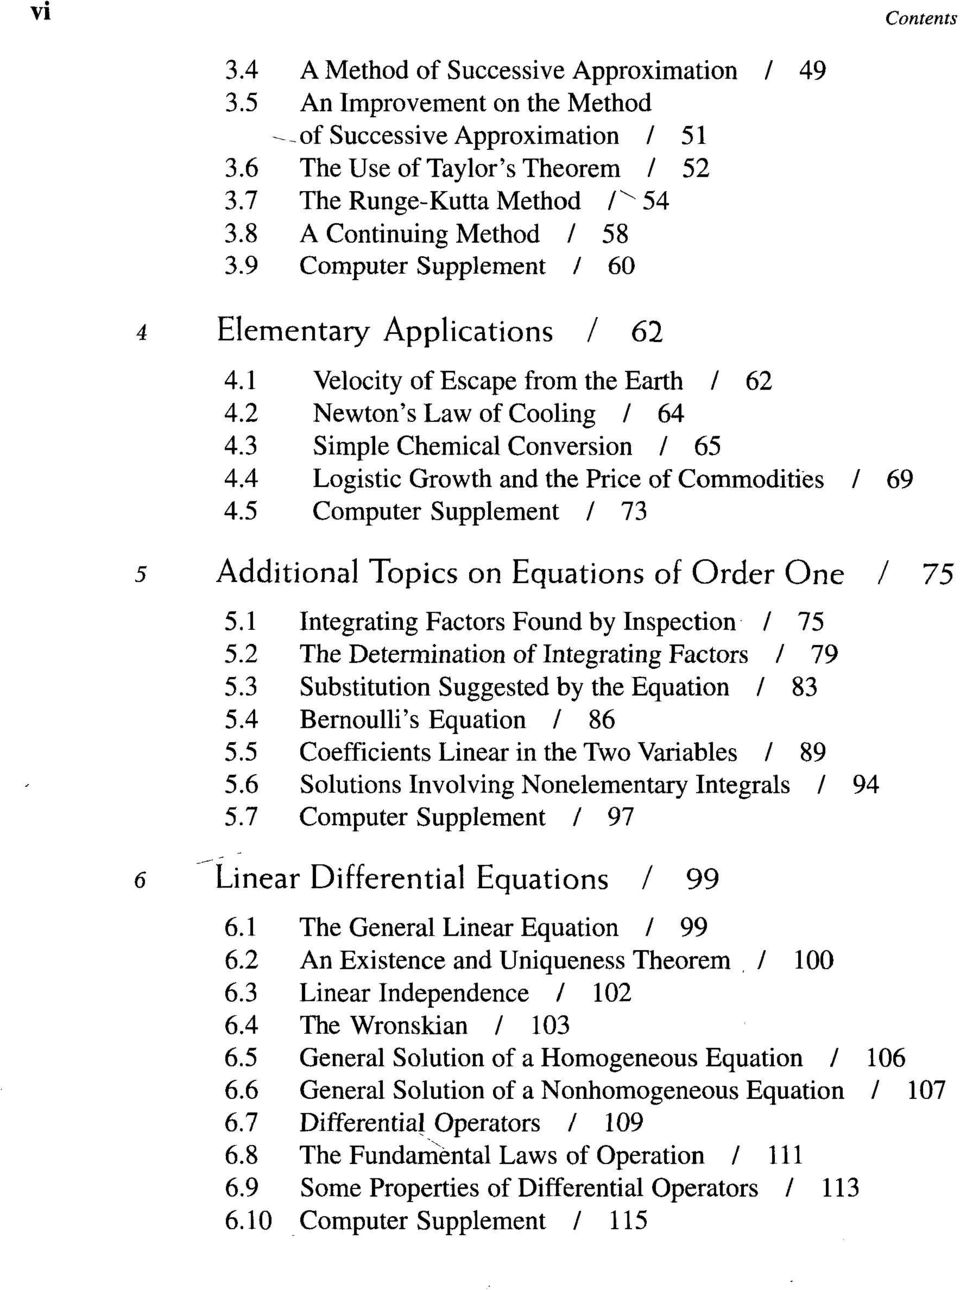 4 Logistic Growth and the Price of Commodities / 69 4.5 Computer Supplement / 73 Additional Topics on Equations of Order One / 75 5.1 Integrating Factors Found by Inspection / 75 5.